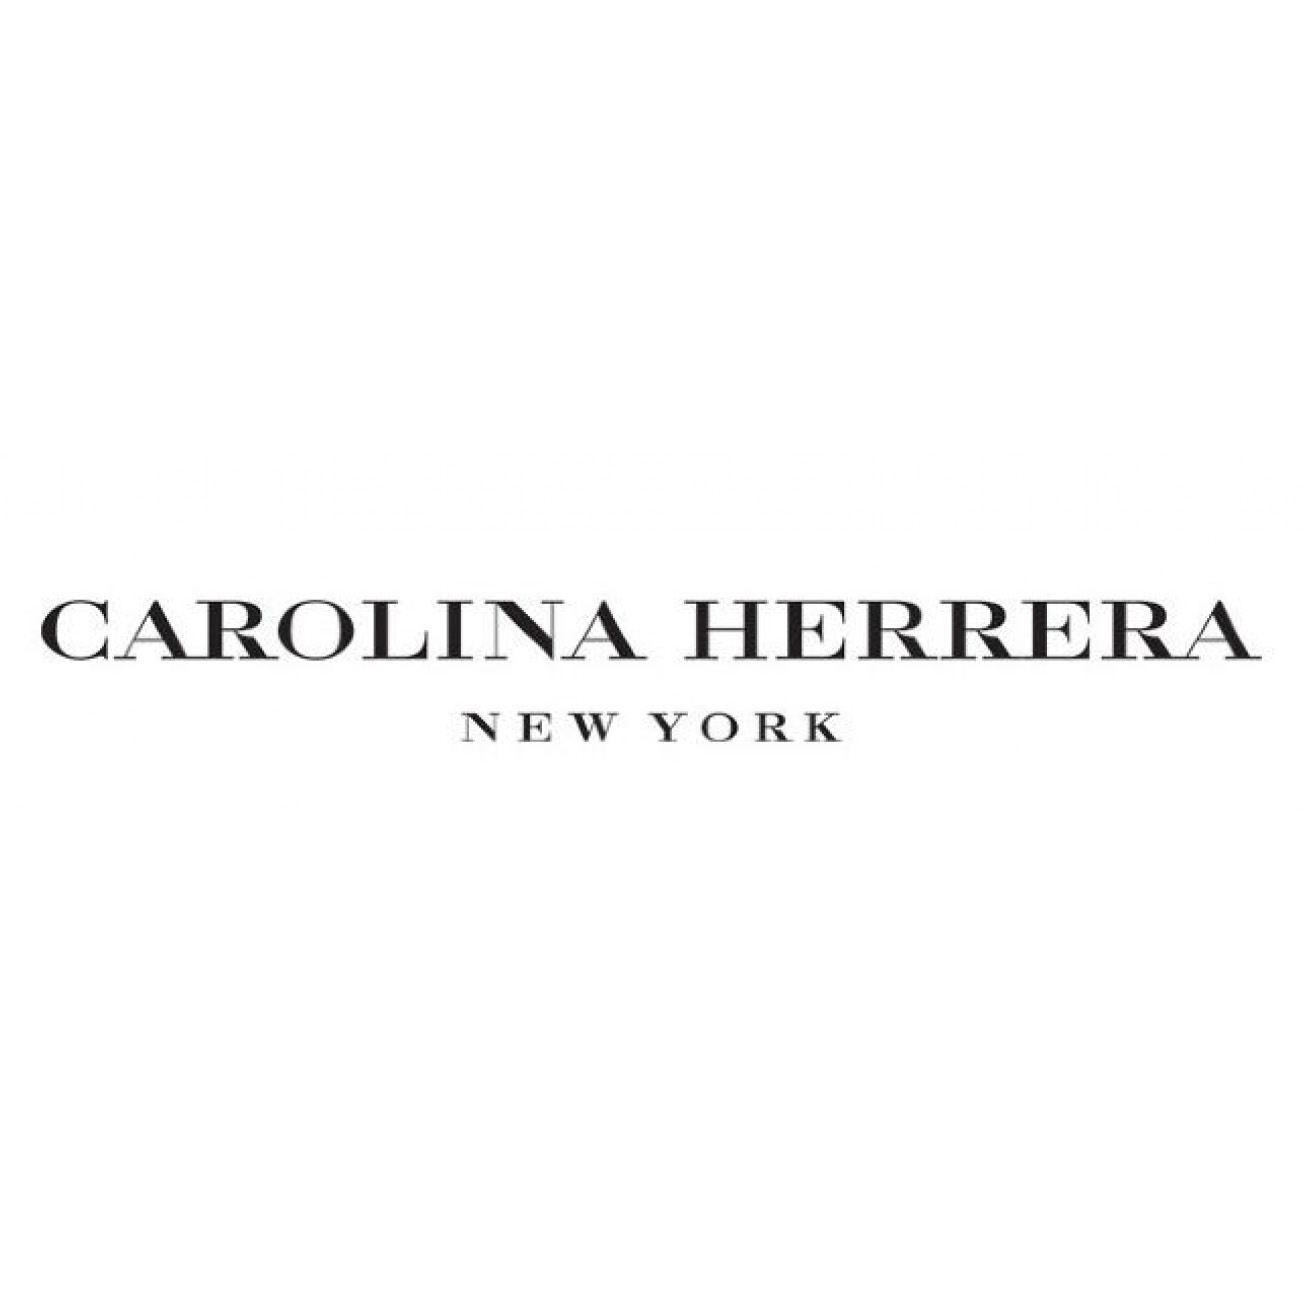 Drawing inspiration from a plethora of artistic mediums ranging from architecture to cinema to painting, Venezuelan designer Carolina Herrera articulates style in a manner than exudes effortless and timeless sophistication.